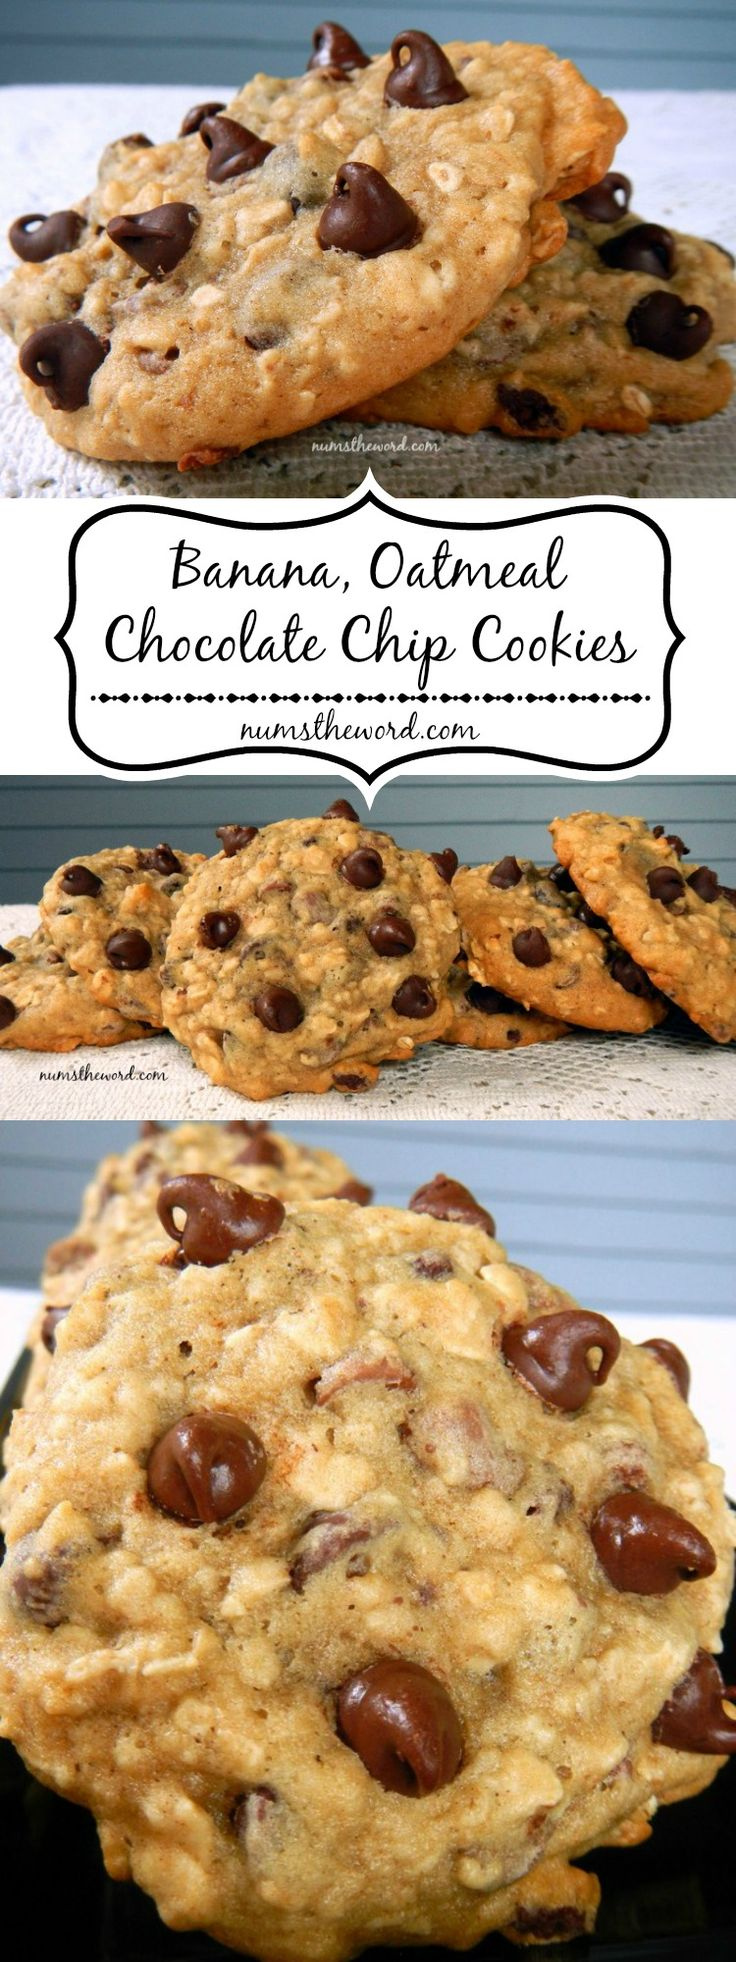 Breakfast or Dessert? Healthy Banana, Oatmeal, Chocolate Chip Cookies sound like a dessert, taste like a dessert but pass as breakfast in my house!